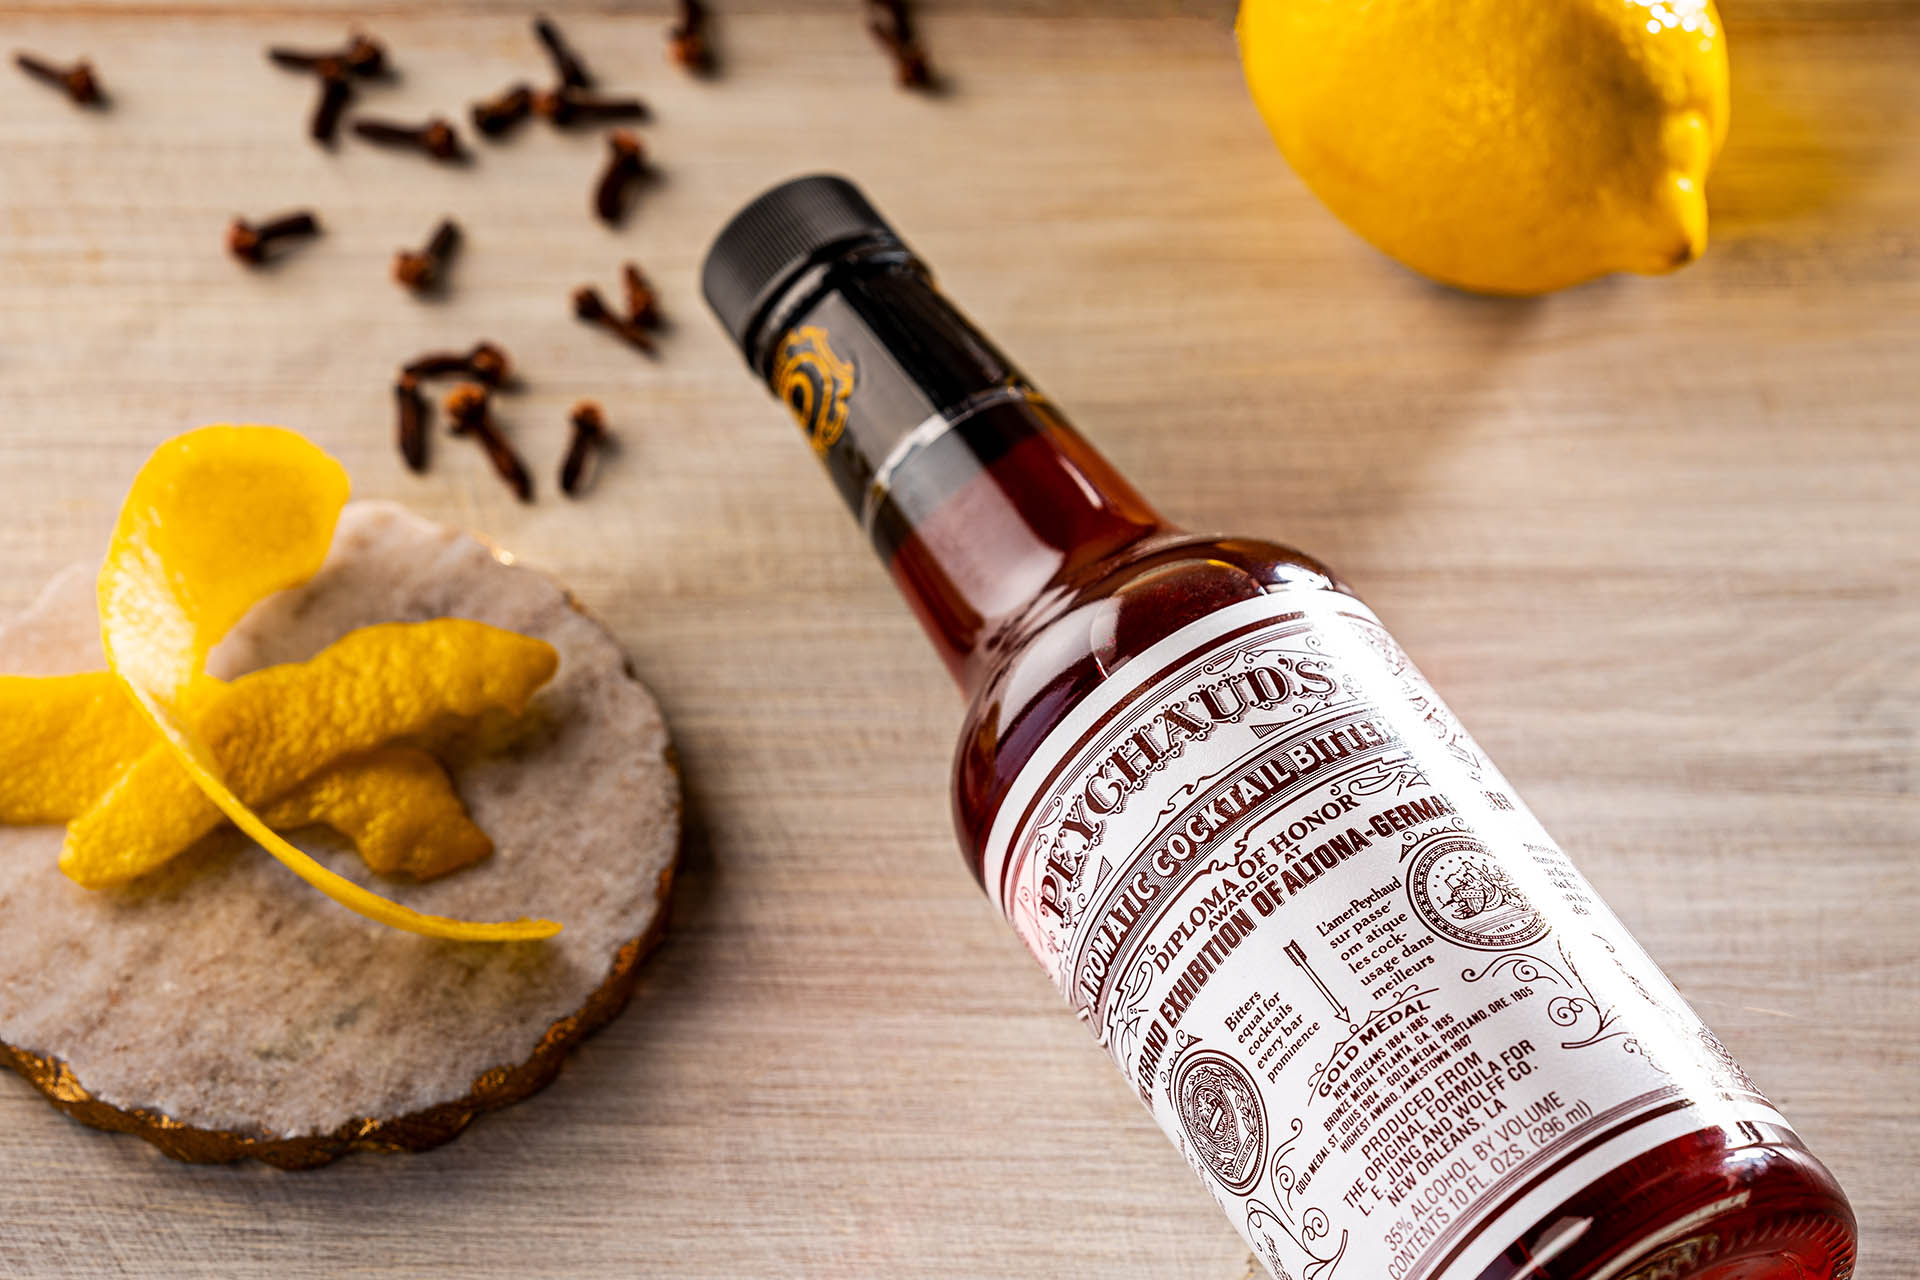 Peychaud's Bitters with lemon peel and cloves